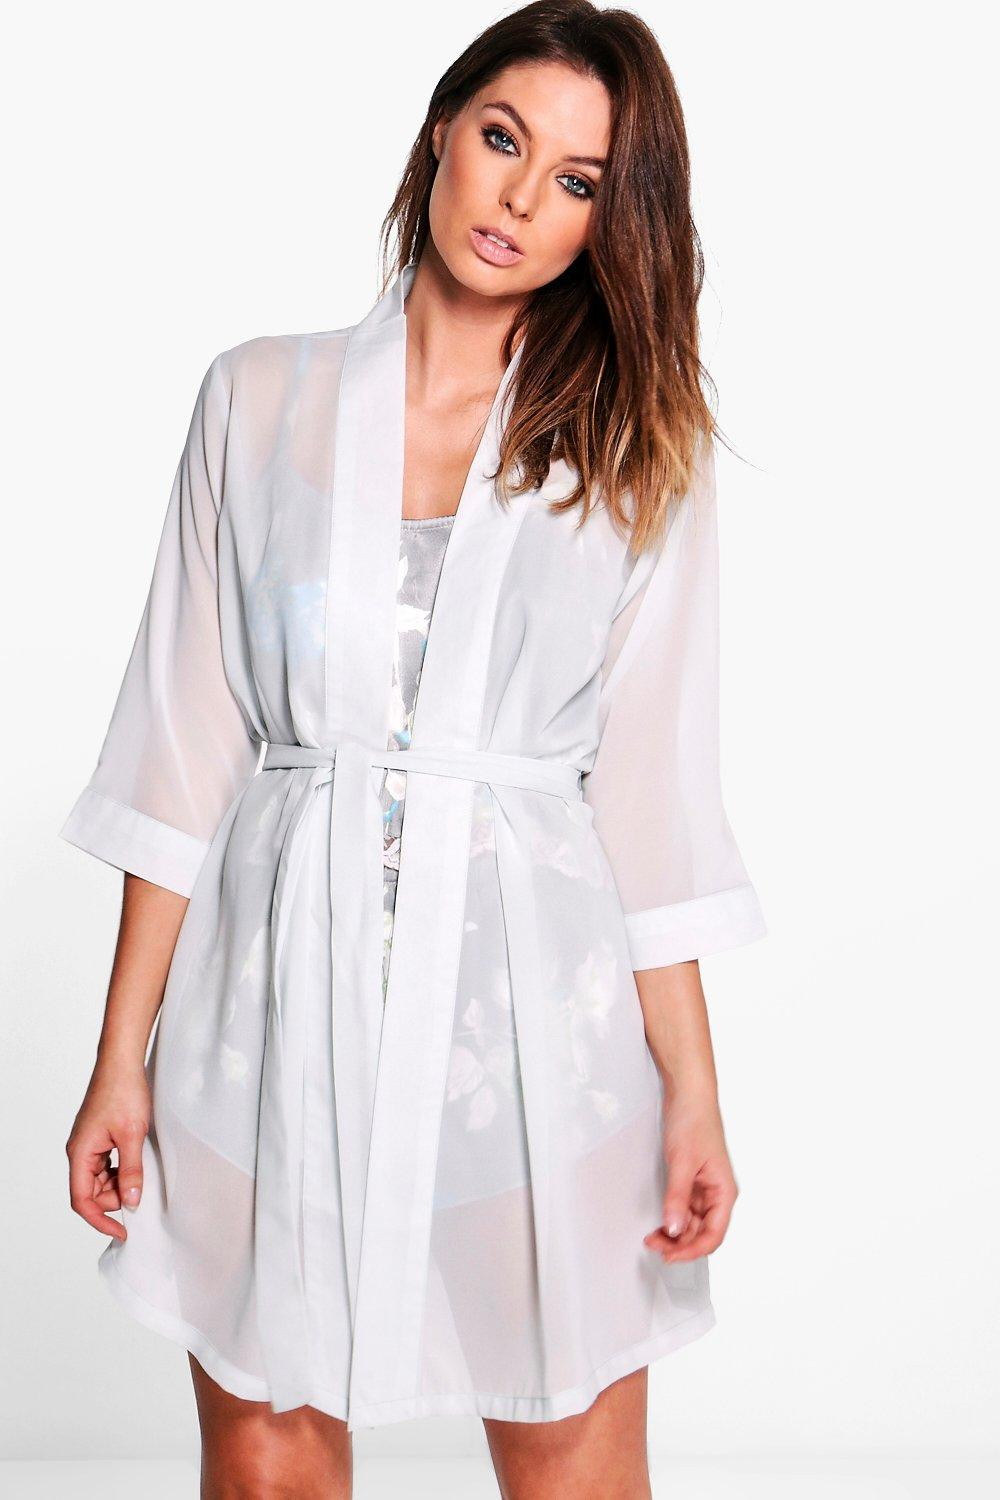 Shop our range of sleepwear for women for pyjamas, loungewear, nightgowns, pajama sets, ladies pjs. Get womens sleepwear styles at Bras N Things. Free .